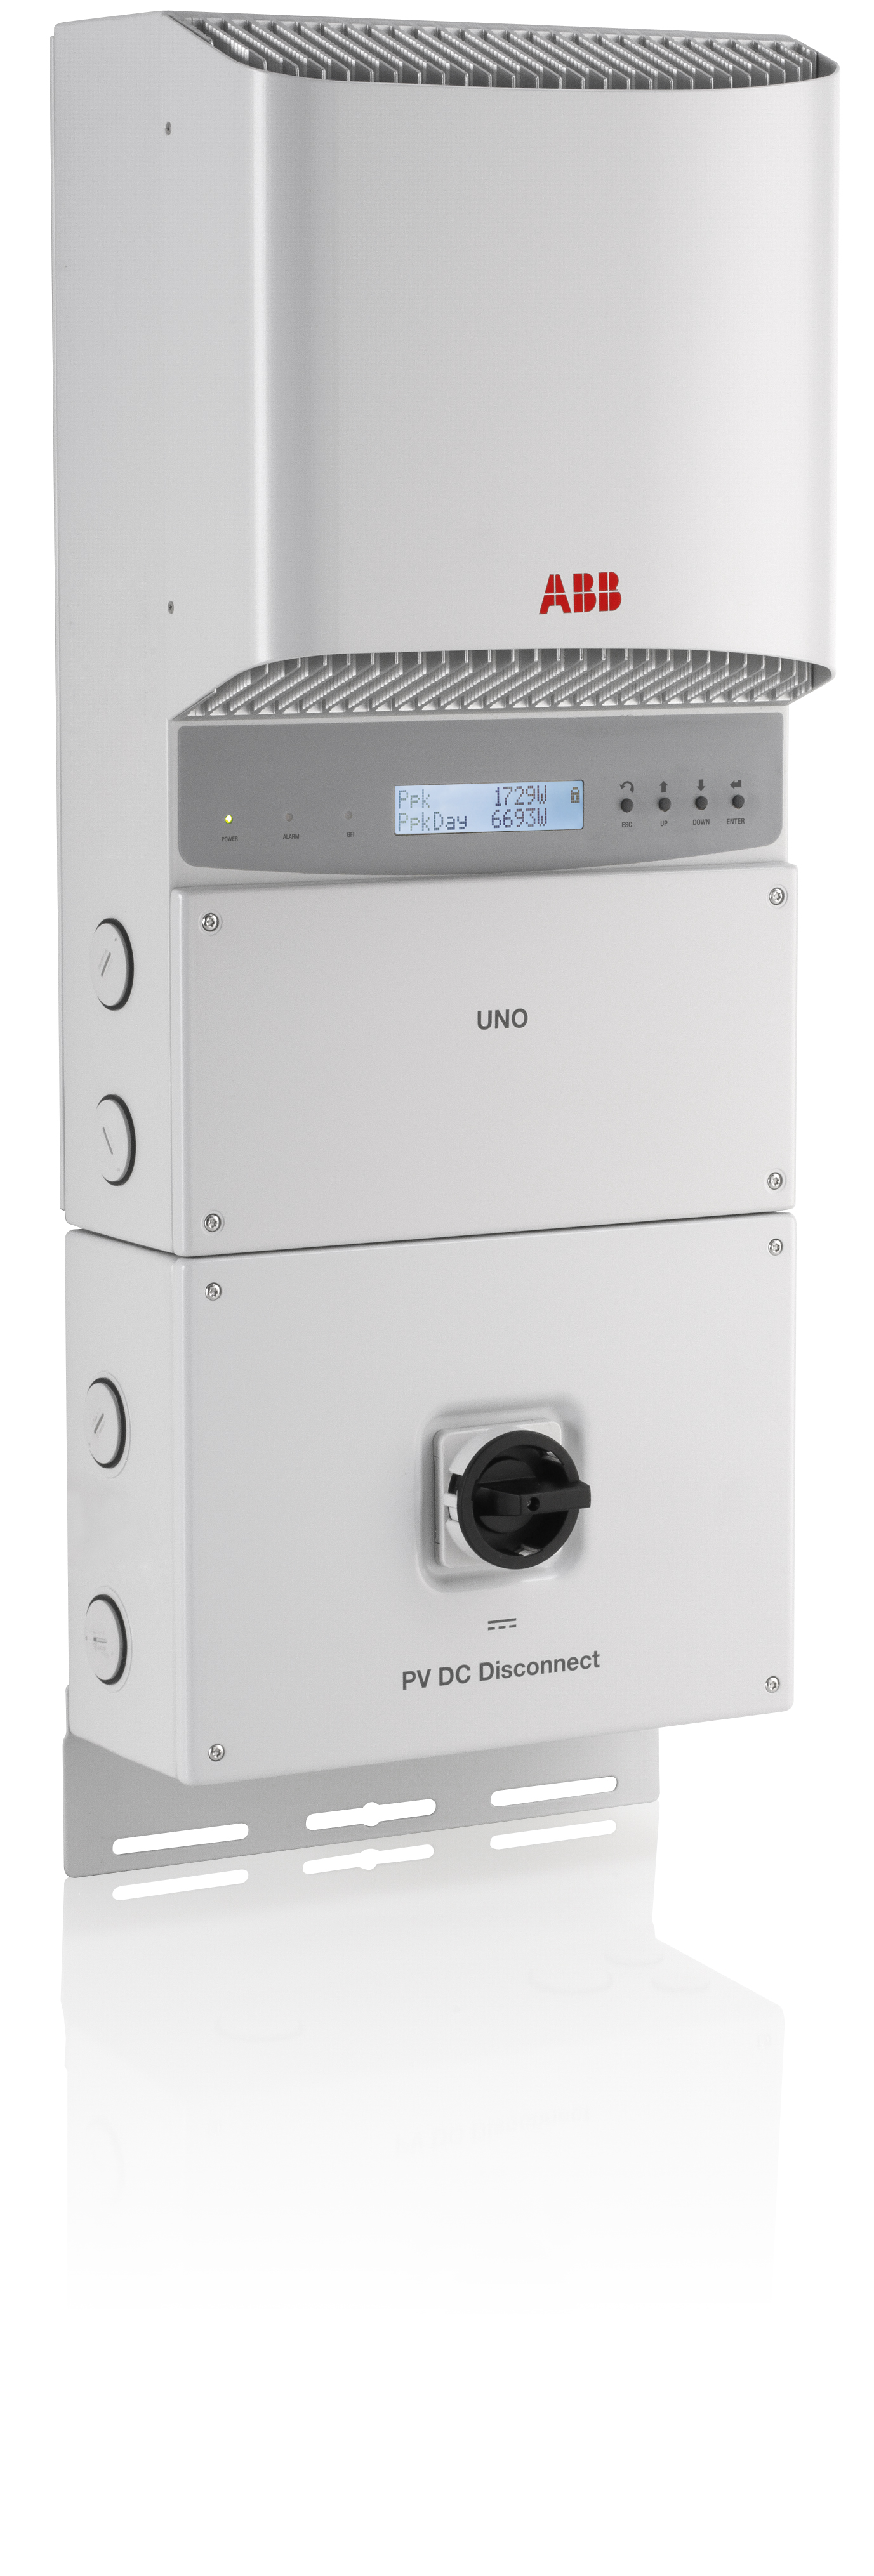 ABB, PVI-3.0-OUTD-S-US-A, NON-ISOLATED STRING INVERTER, 3000W, 208/240/277 VAC, DUAL MPPT WITH AFCI